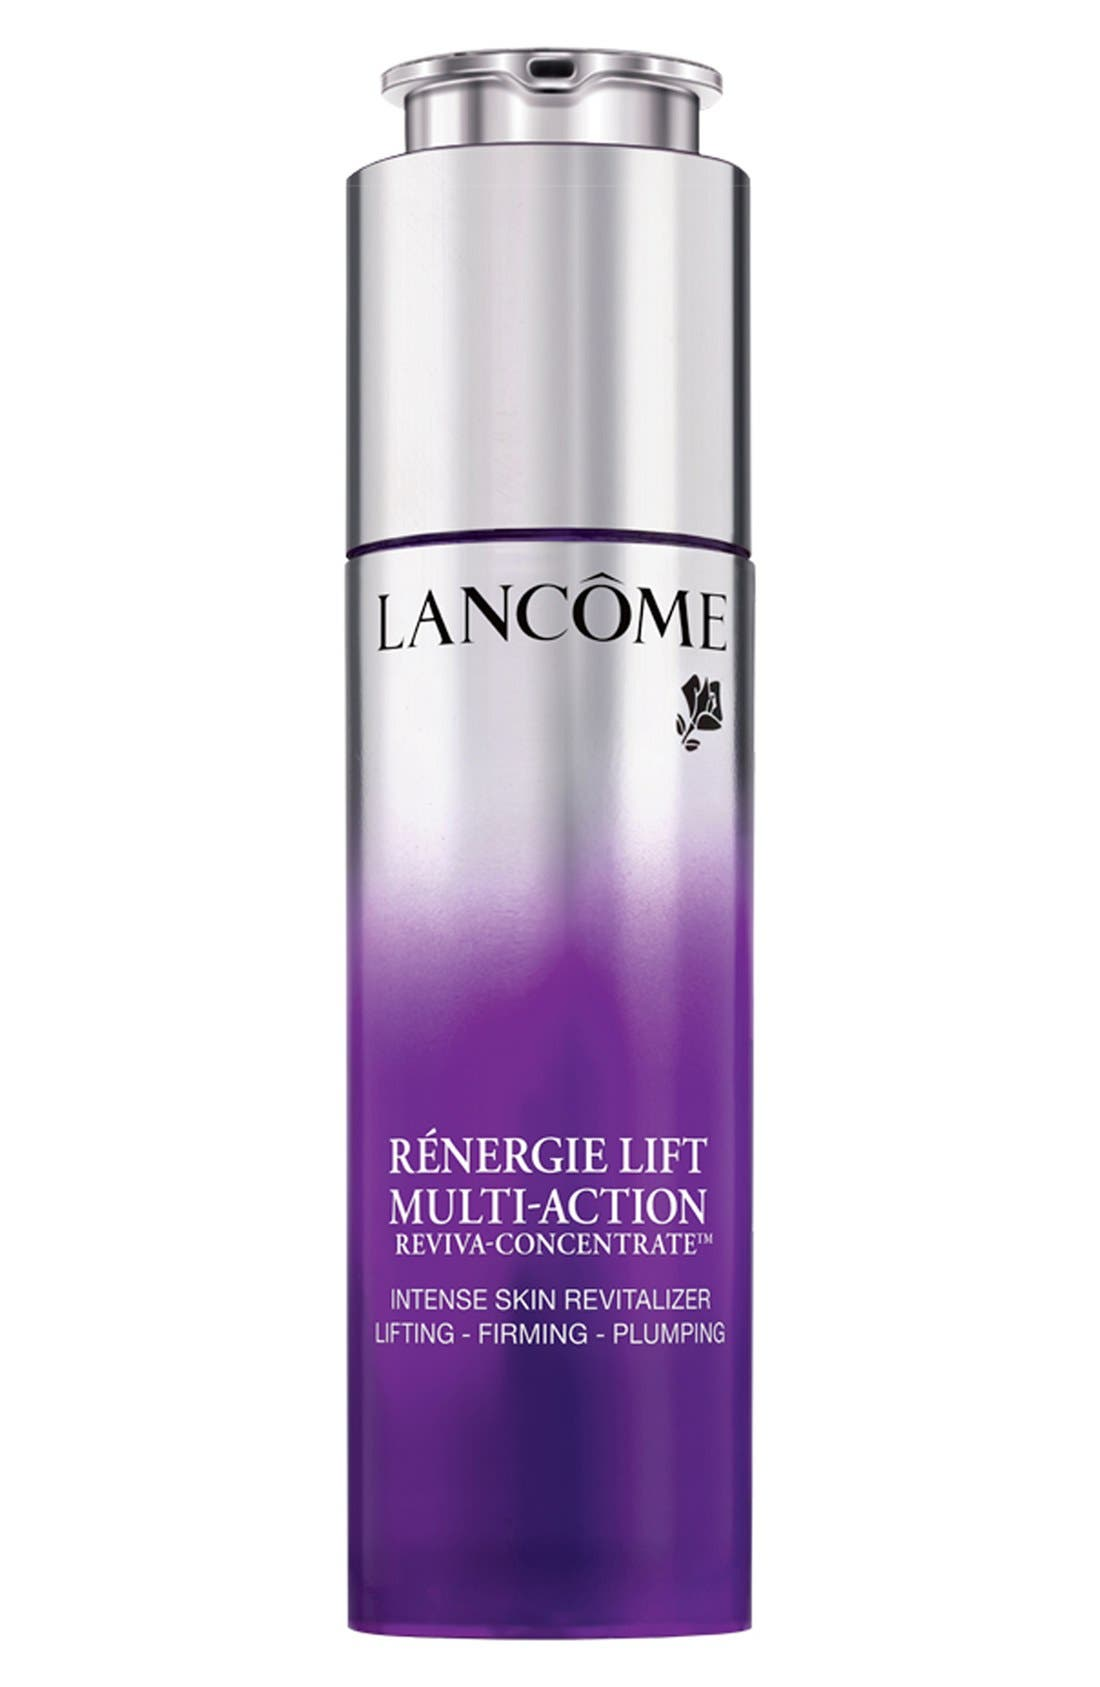 Lancôme Rénergie Lift Multi-Action Reviva Serum